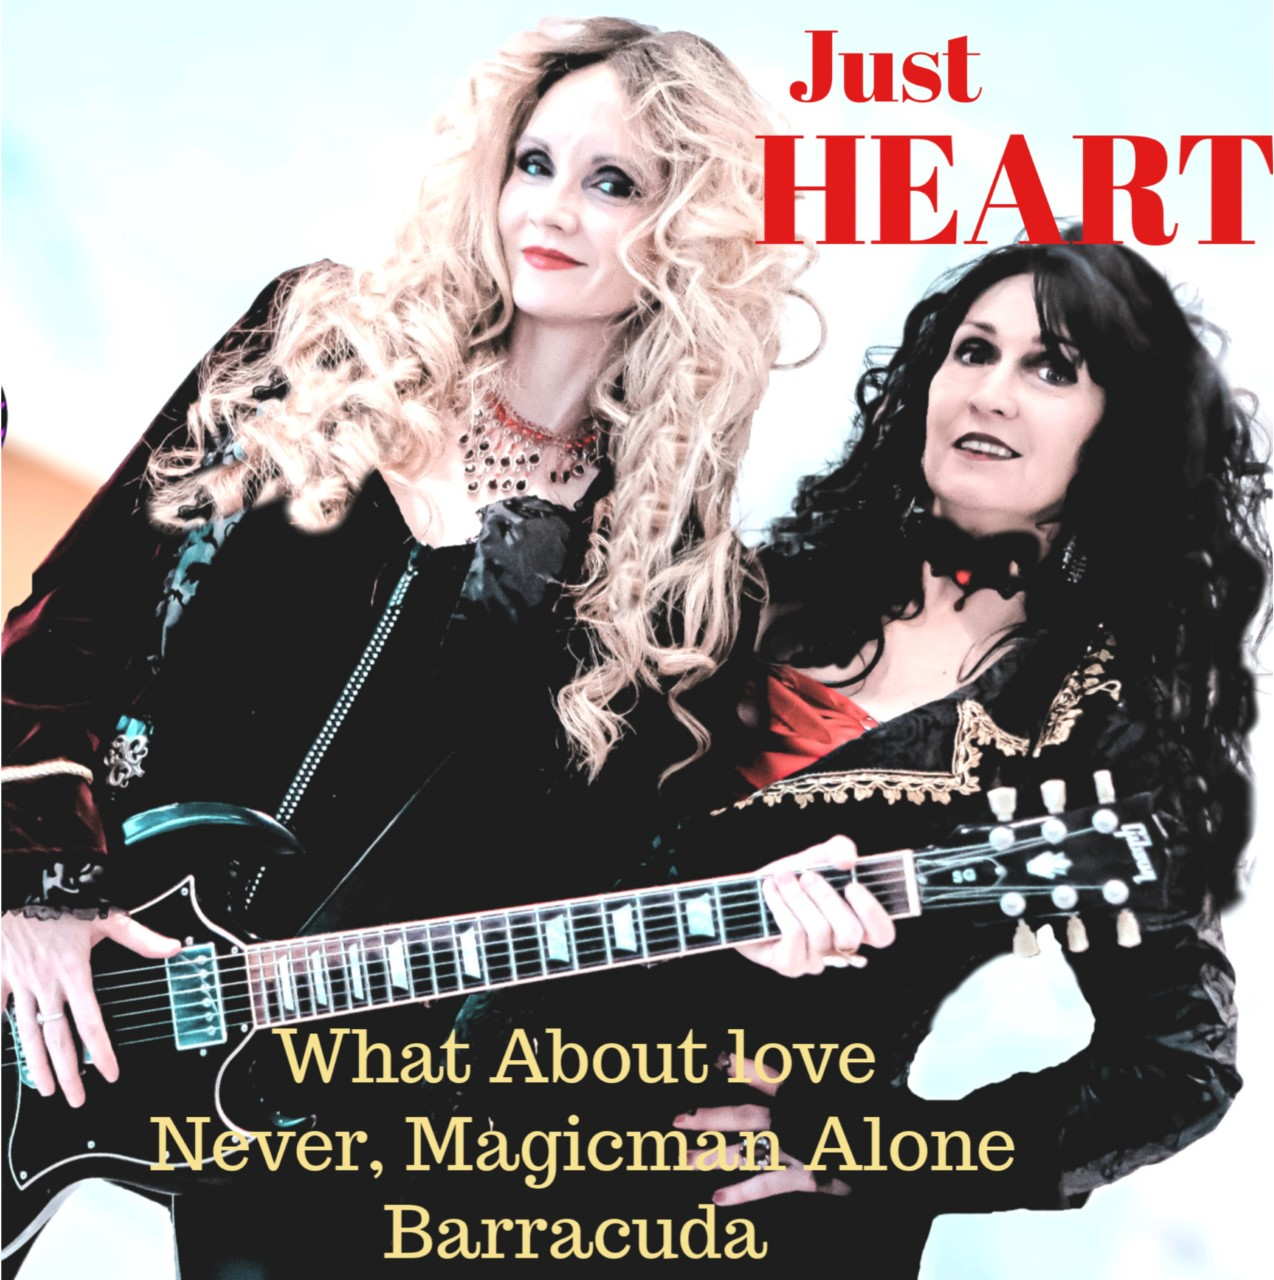 A Night with Just Heart